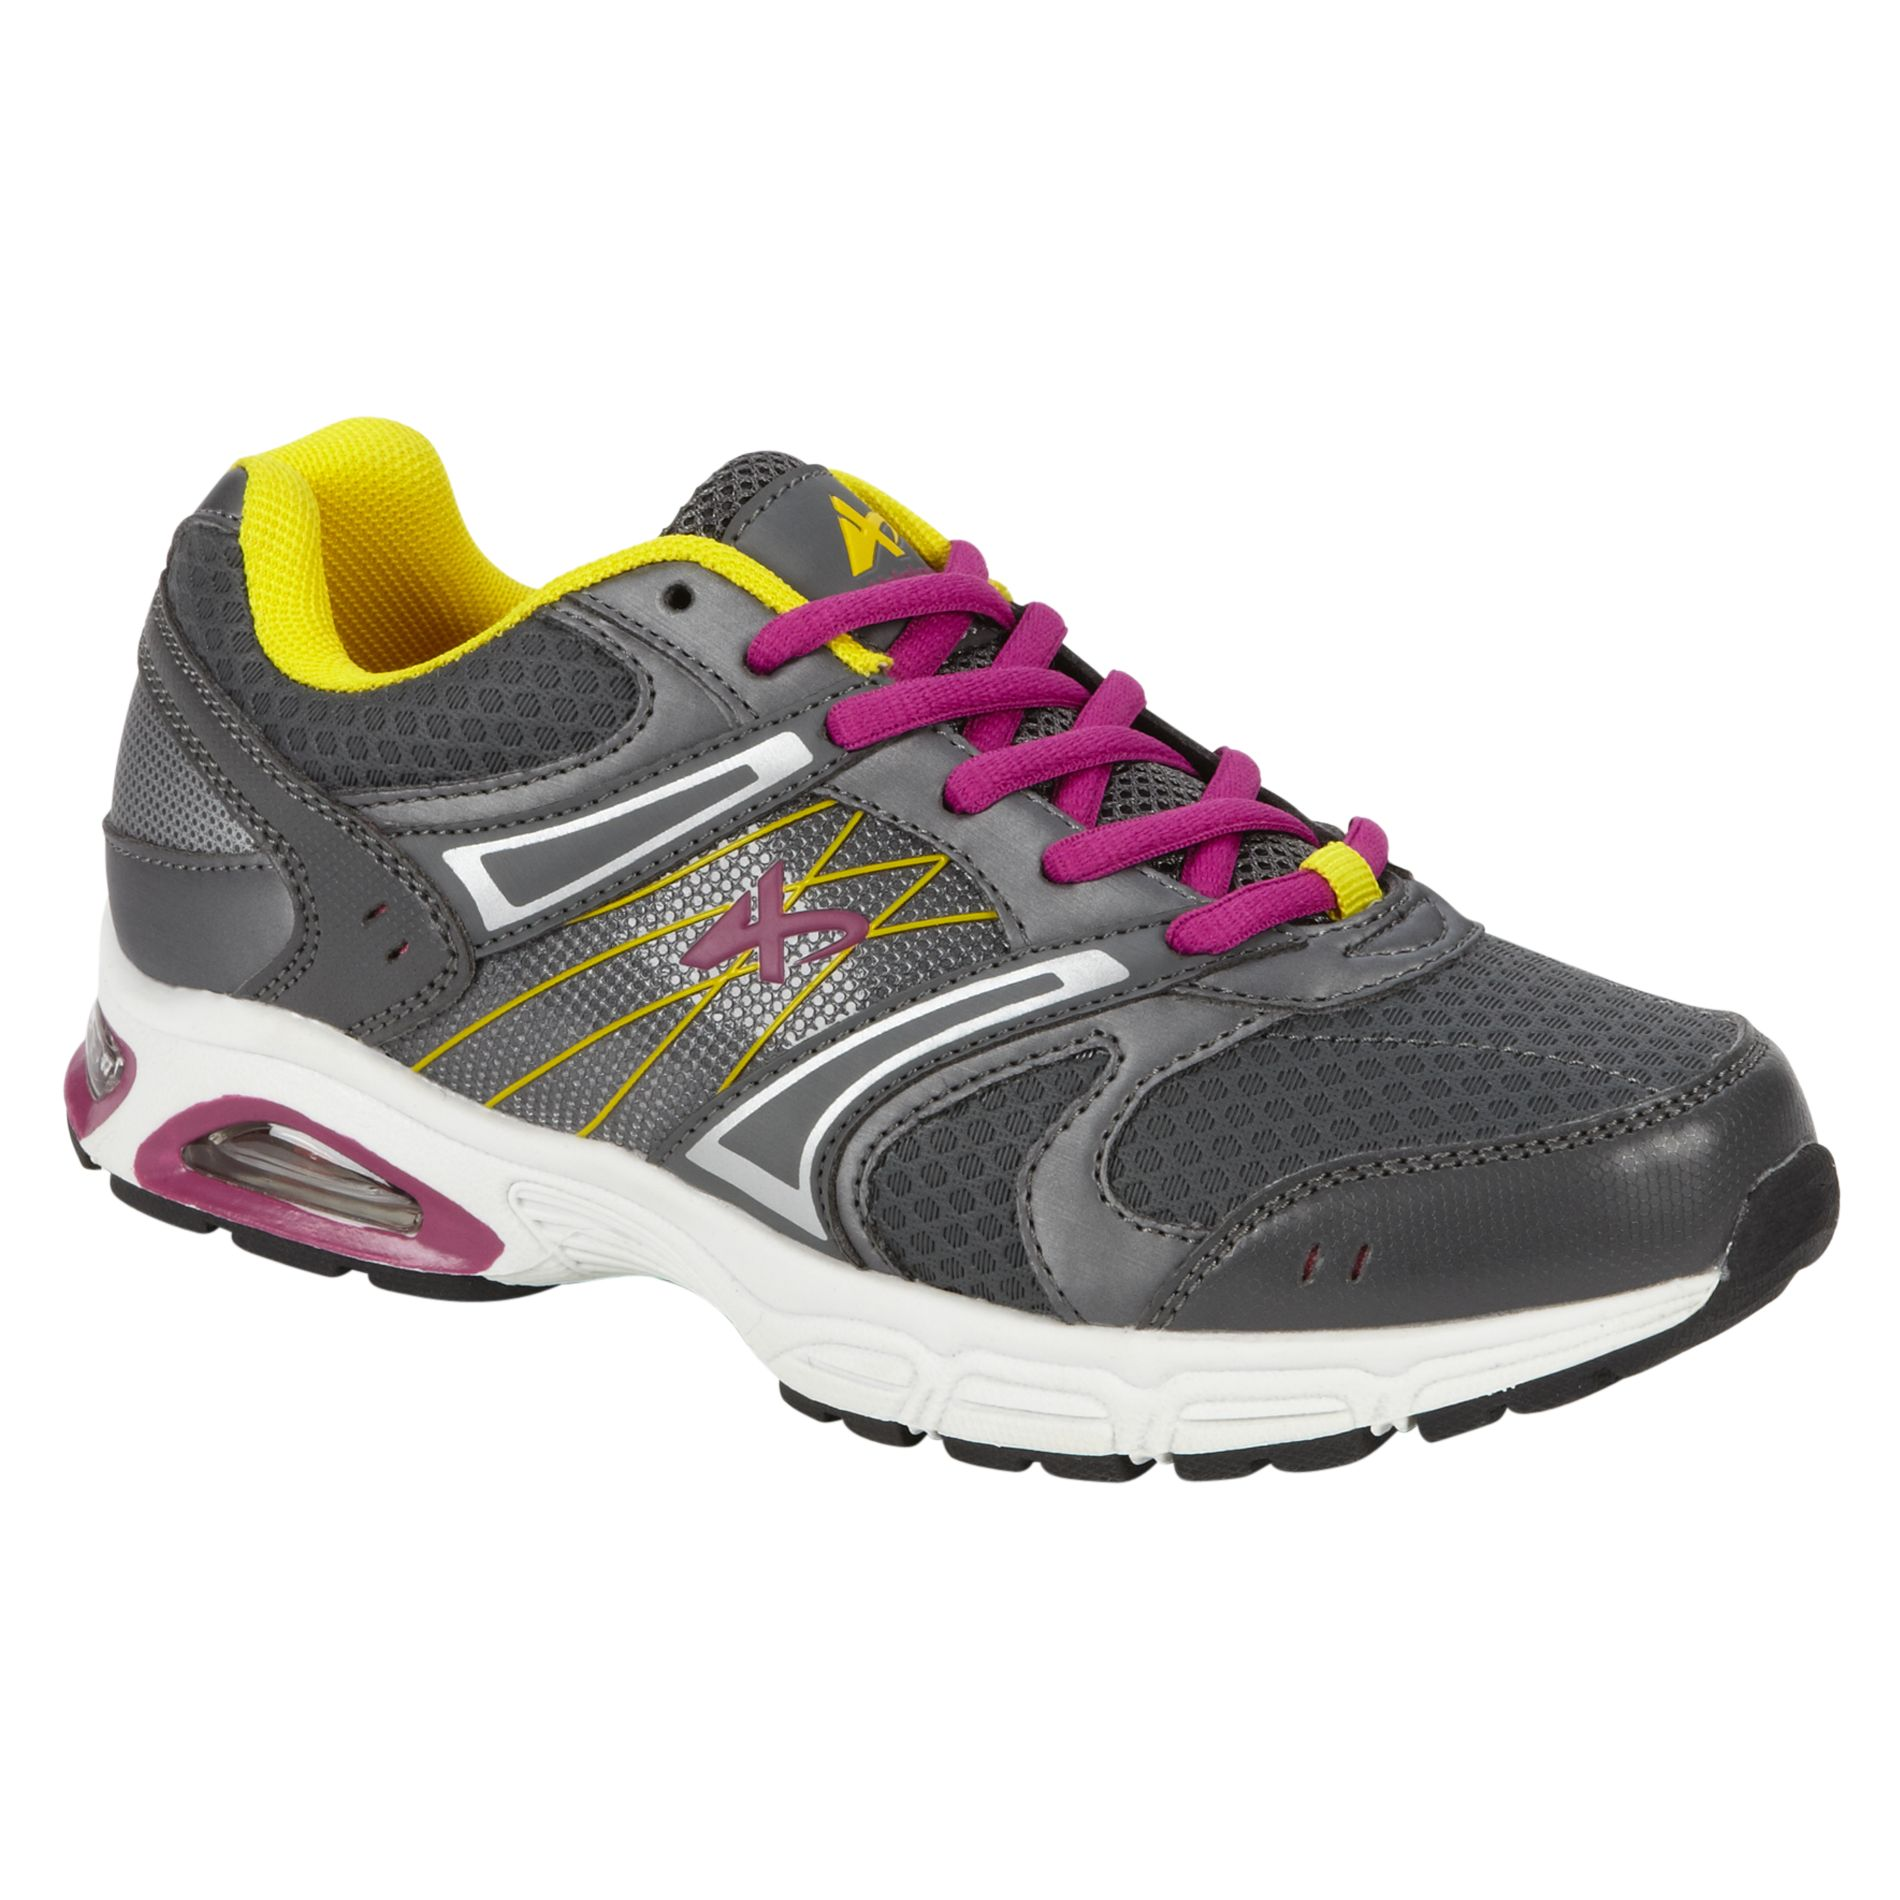 Women's Ath Sky-way Athletic Shoe - Grey